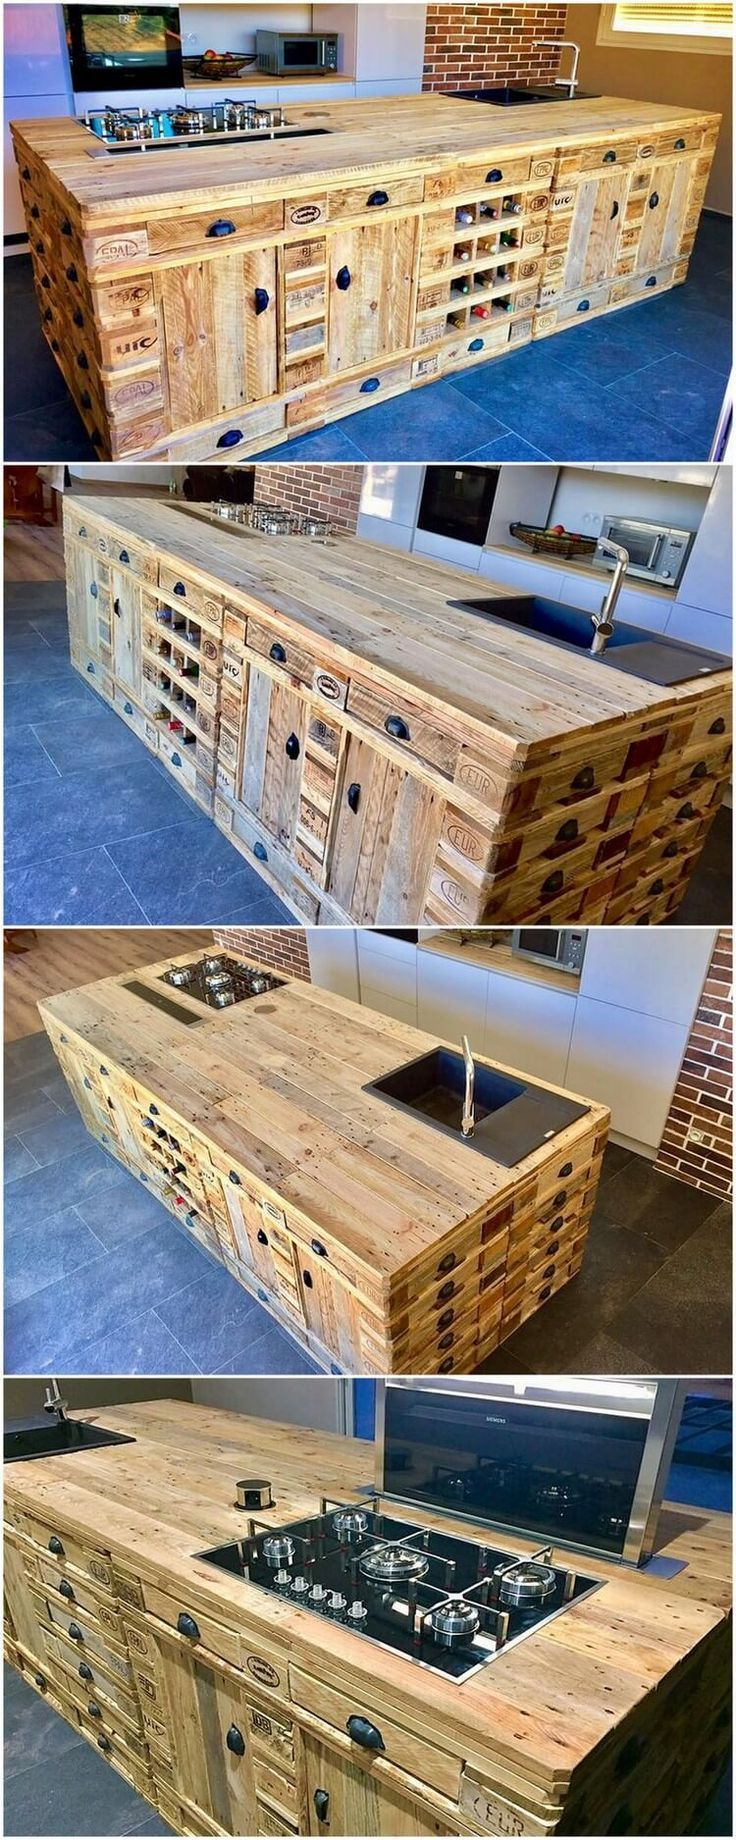 Recycled wooden pallets made kitchen island # processed #wooden #ku … #WoodWorking